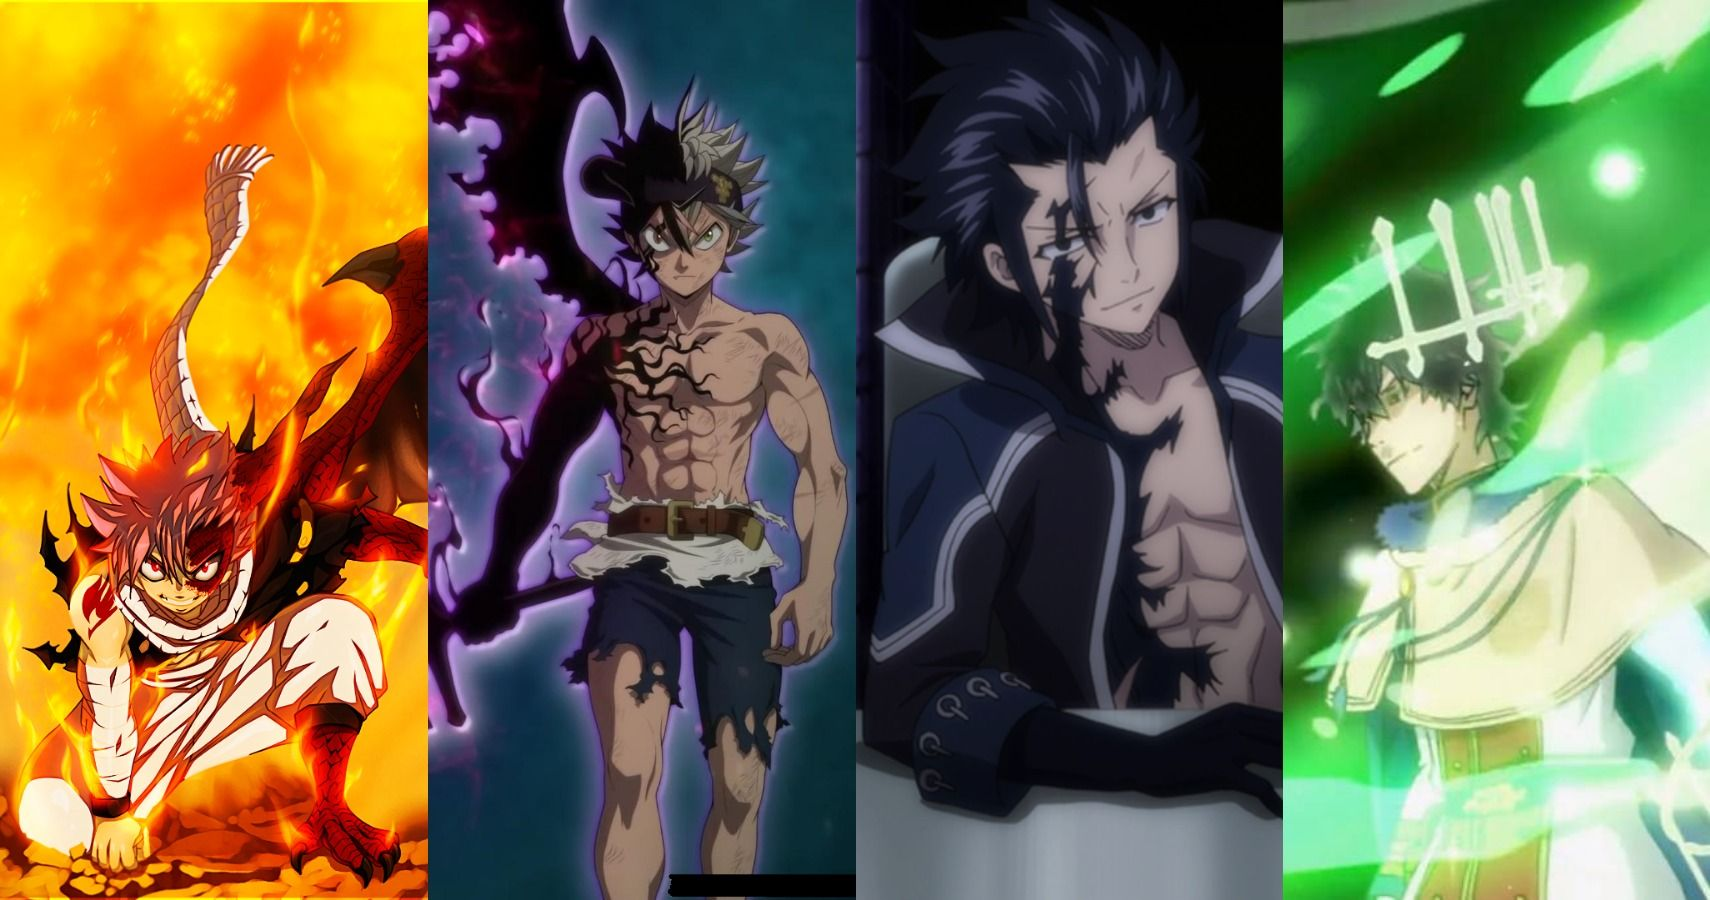 5 Similarities Between Fairy Tail And Black Clover (& 5 Differences)